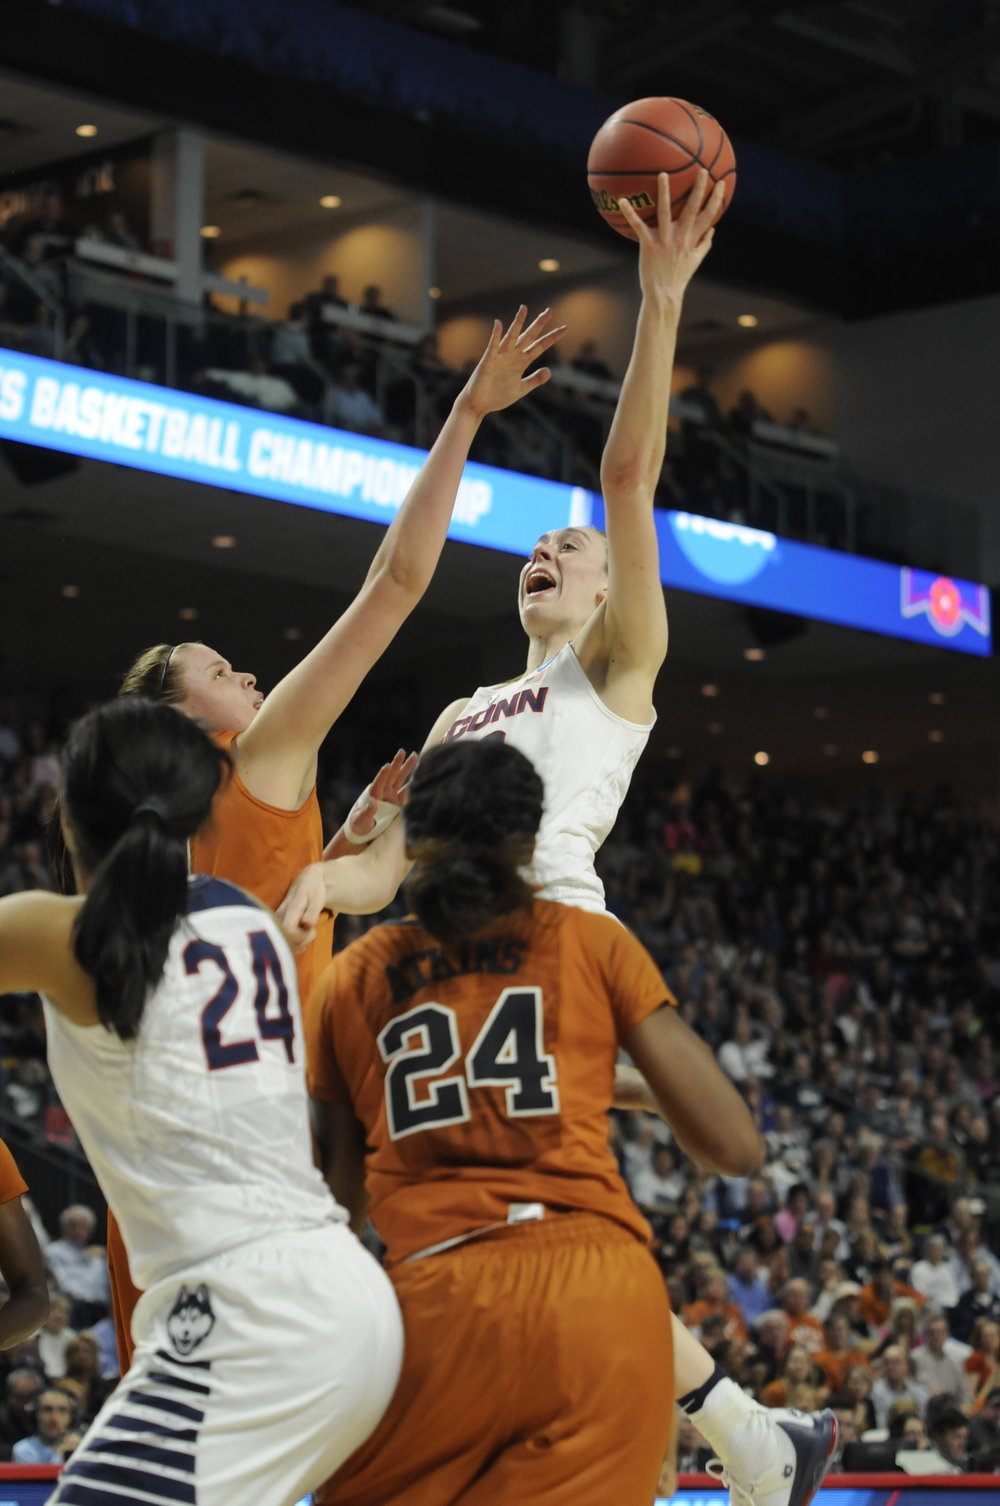 Connecticut forward Breanna Stewart (30) goes for a rebound during an NCAA tournament quarterfinal game against Texas on March 28, 2016. Stewart finished with 21 points, 13 rebounds,  5 assists, 3 blocks, and 3 steals in UConn's 86-65 win.